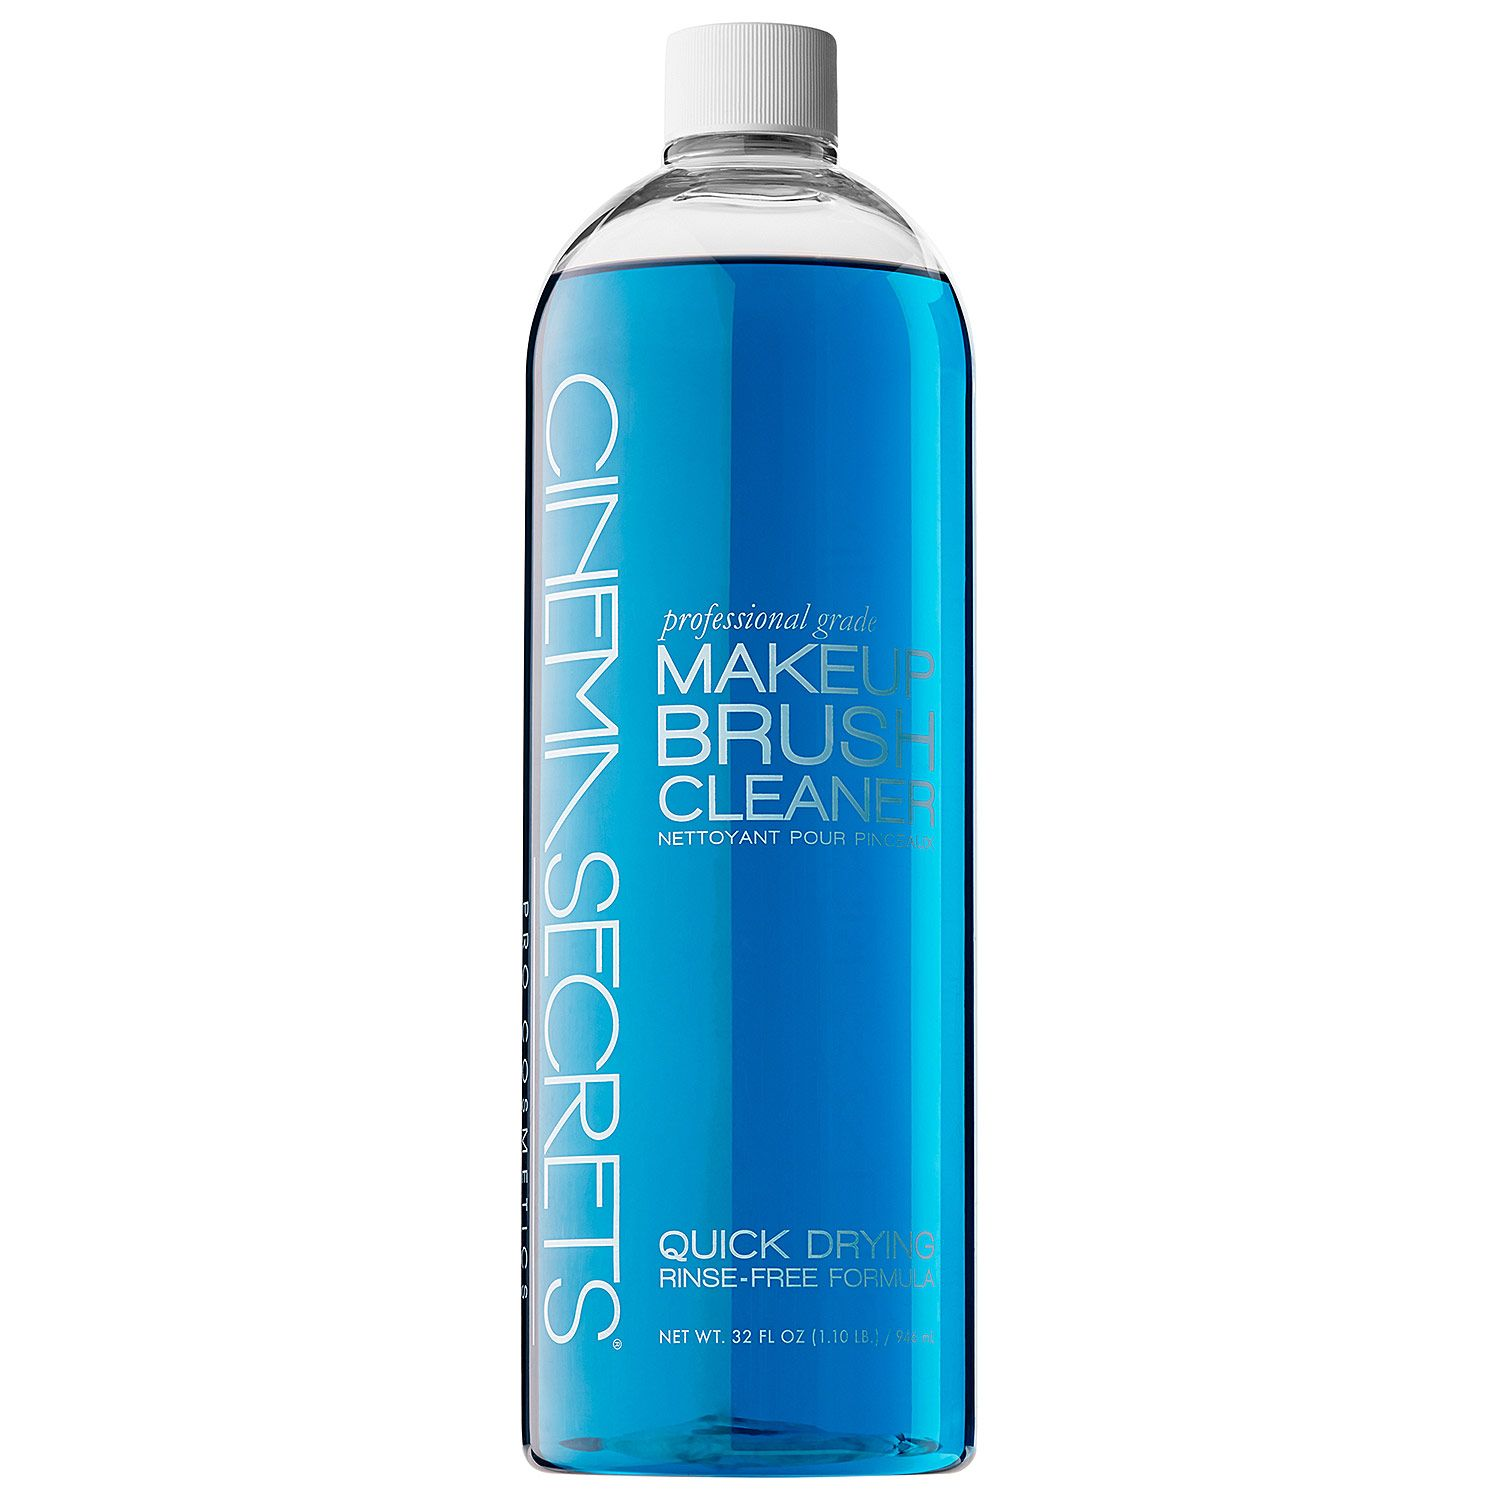 Makeup Brush Cleaner (With images) Makeup brush cleaner